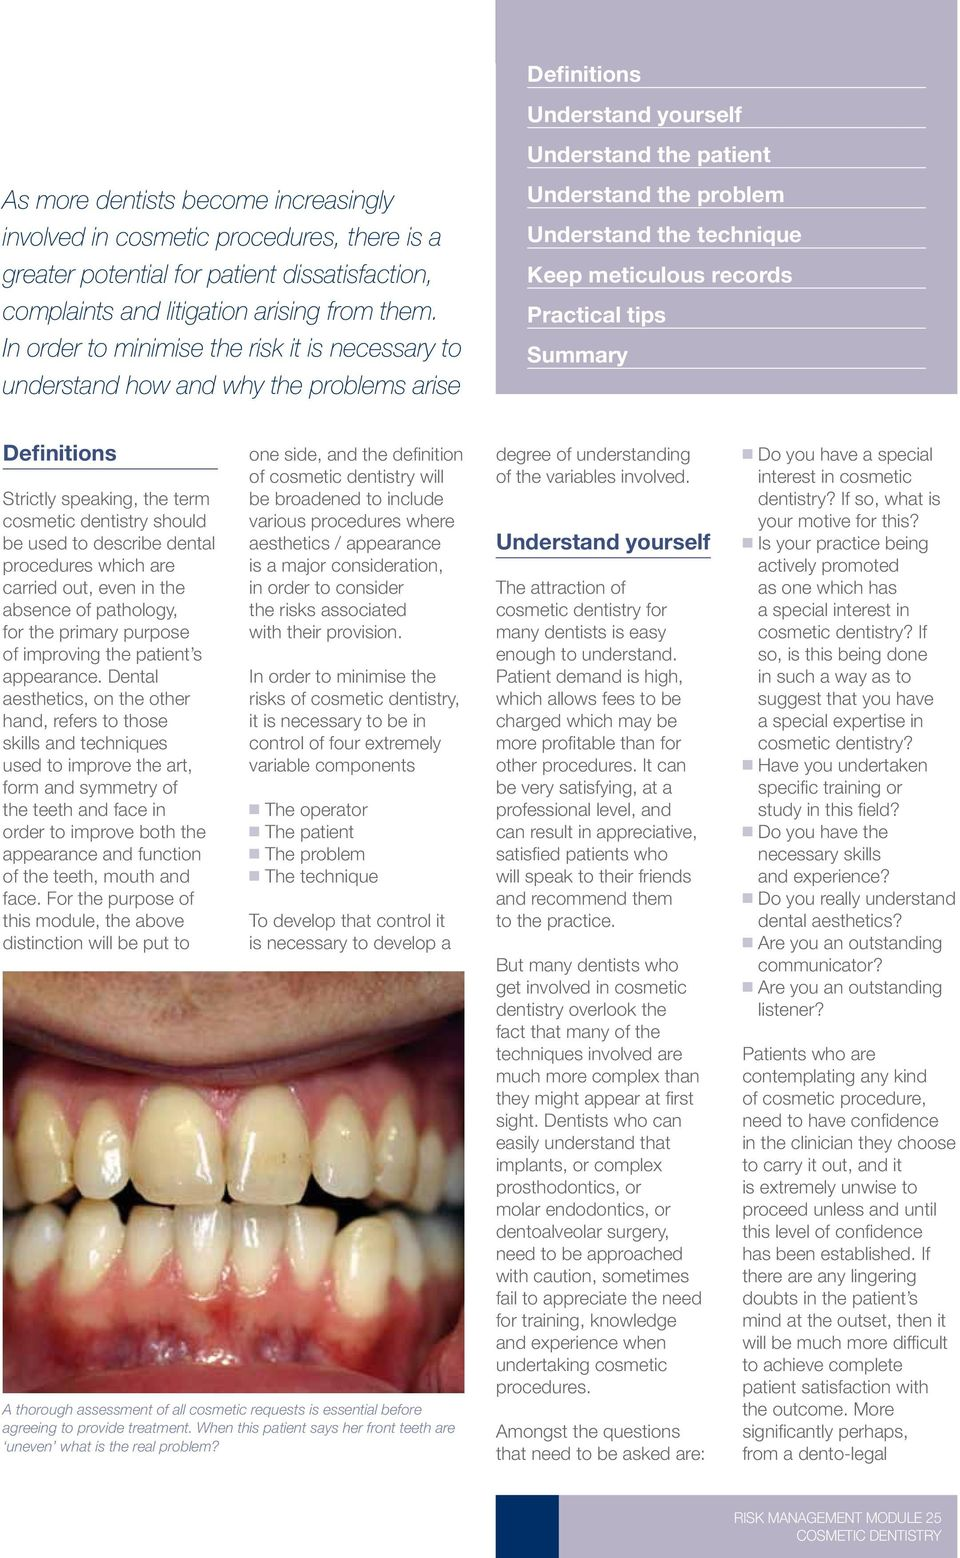 RISK MANAGEMENT MODULE 25 ISSN (PRINT) Cosmetic dentistry